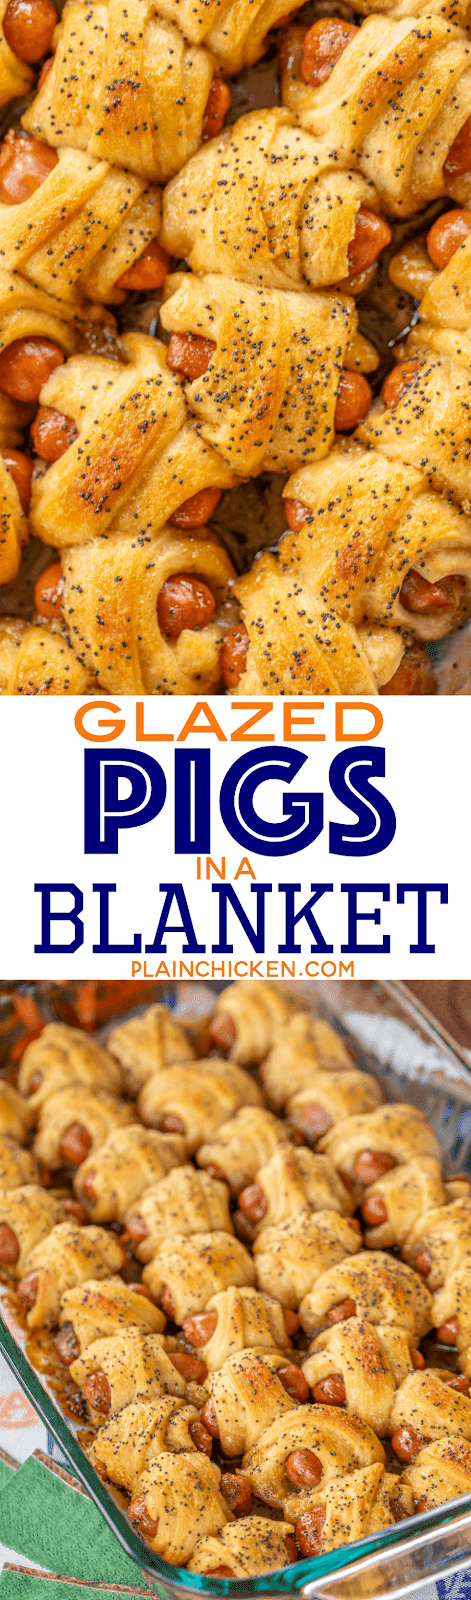 Glazed Pigs in a Blanket - pigs in a blanket baked in a sweet and savory brown sugar glaze. Took these to a party and they were gone in minutes!!! Crescent rolls, dijon mustard, little smokies, brown sugar, butter, poppy seeds and Worcestershire sauce. I have zero self-control around these things! Dangerously delicious!! A MUST for all your tailgates and parties! #tailgating #Pigsinablanket #partyfood #appetizer